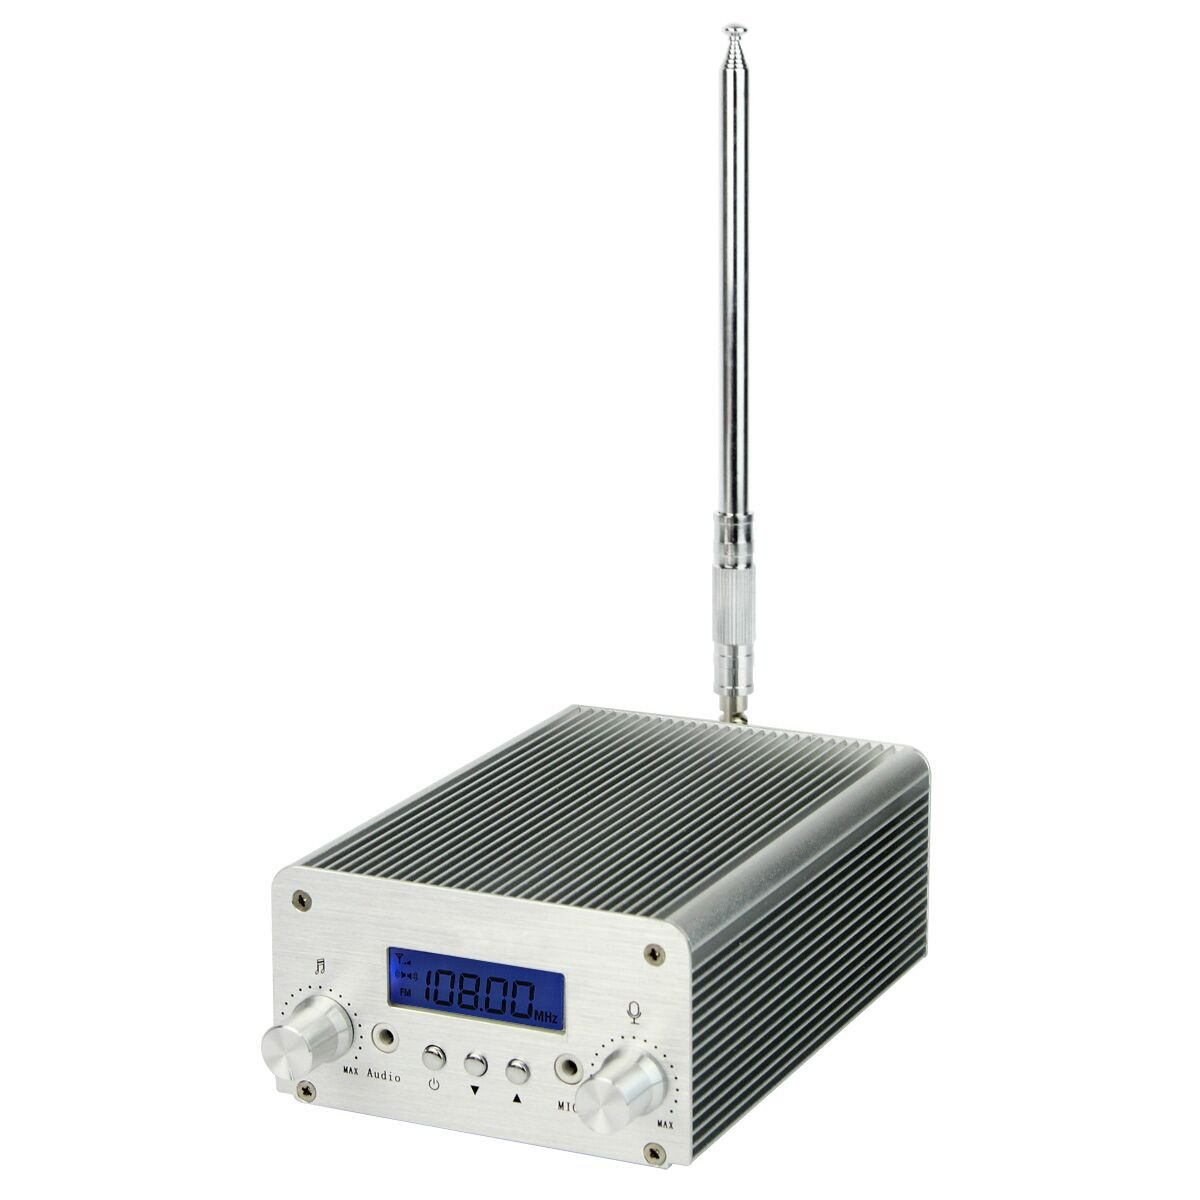 Retekess T6-A 1W 6W FM Transmitter Long Range Mini Radio Stereo Broadcast Station PLL LCD Display AUX in Line with Antenna Factory Church (Silver)